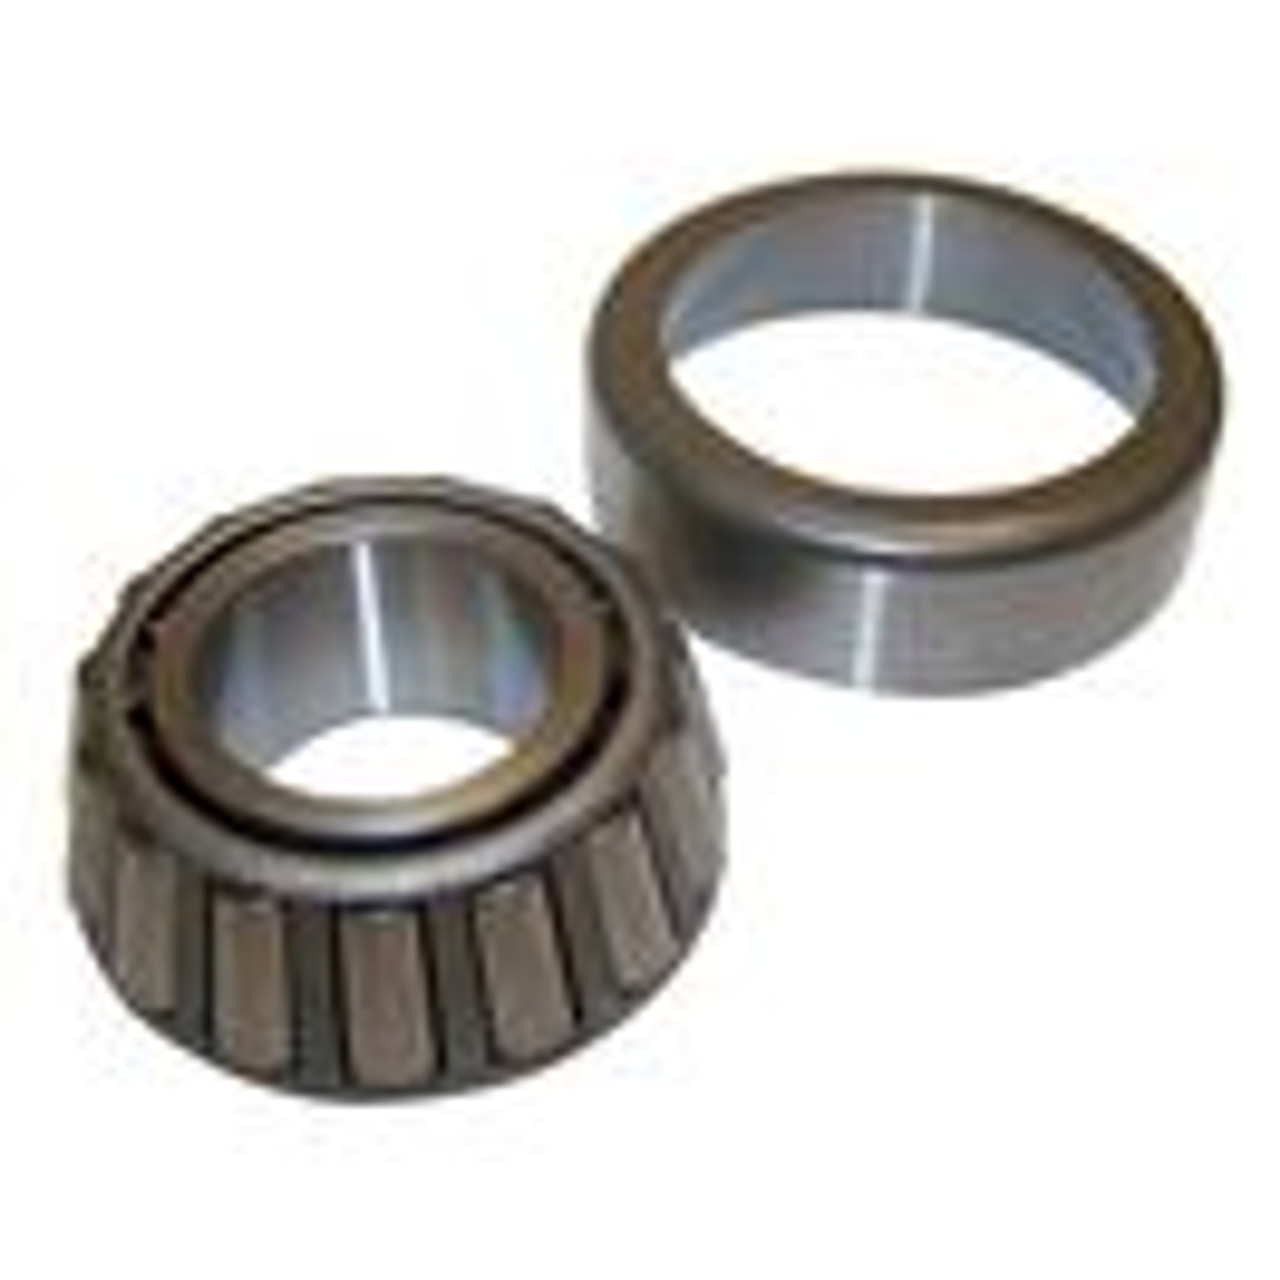 Dana 44 inner pinion bearing and race kit